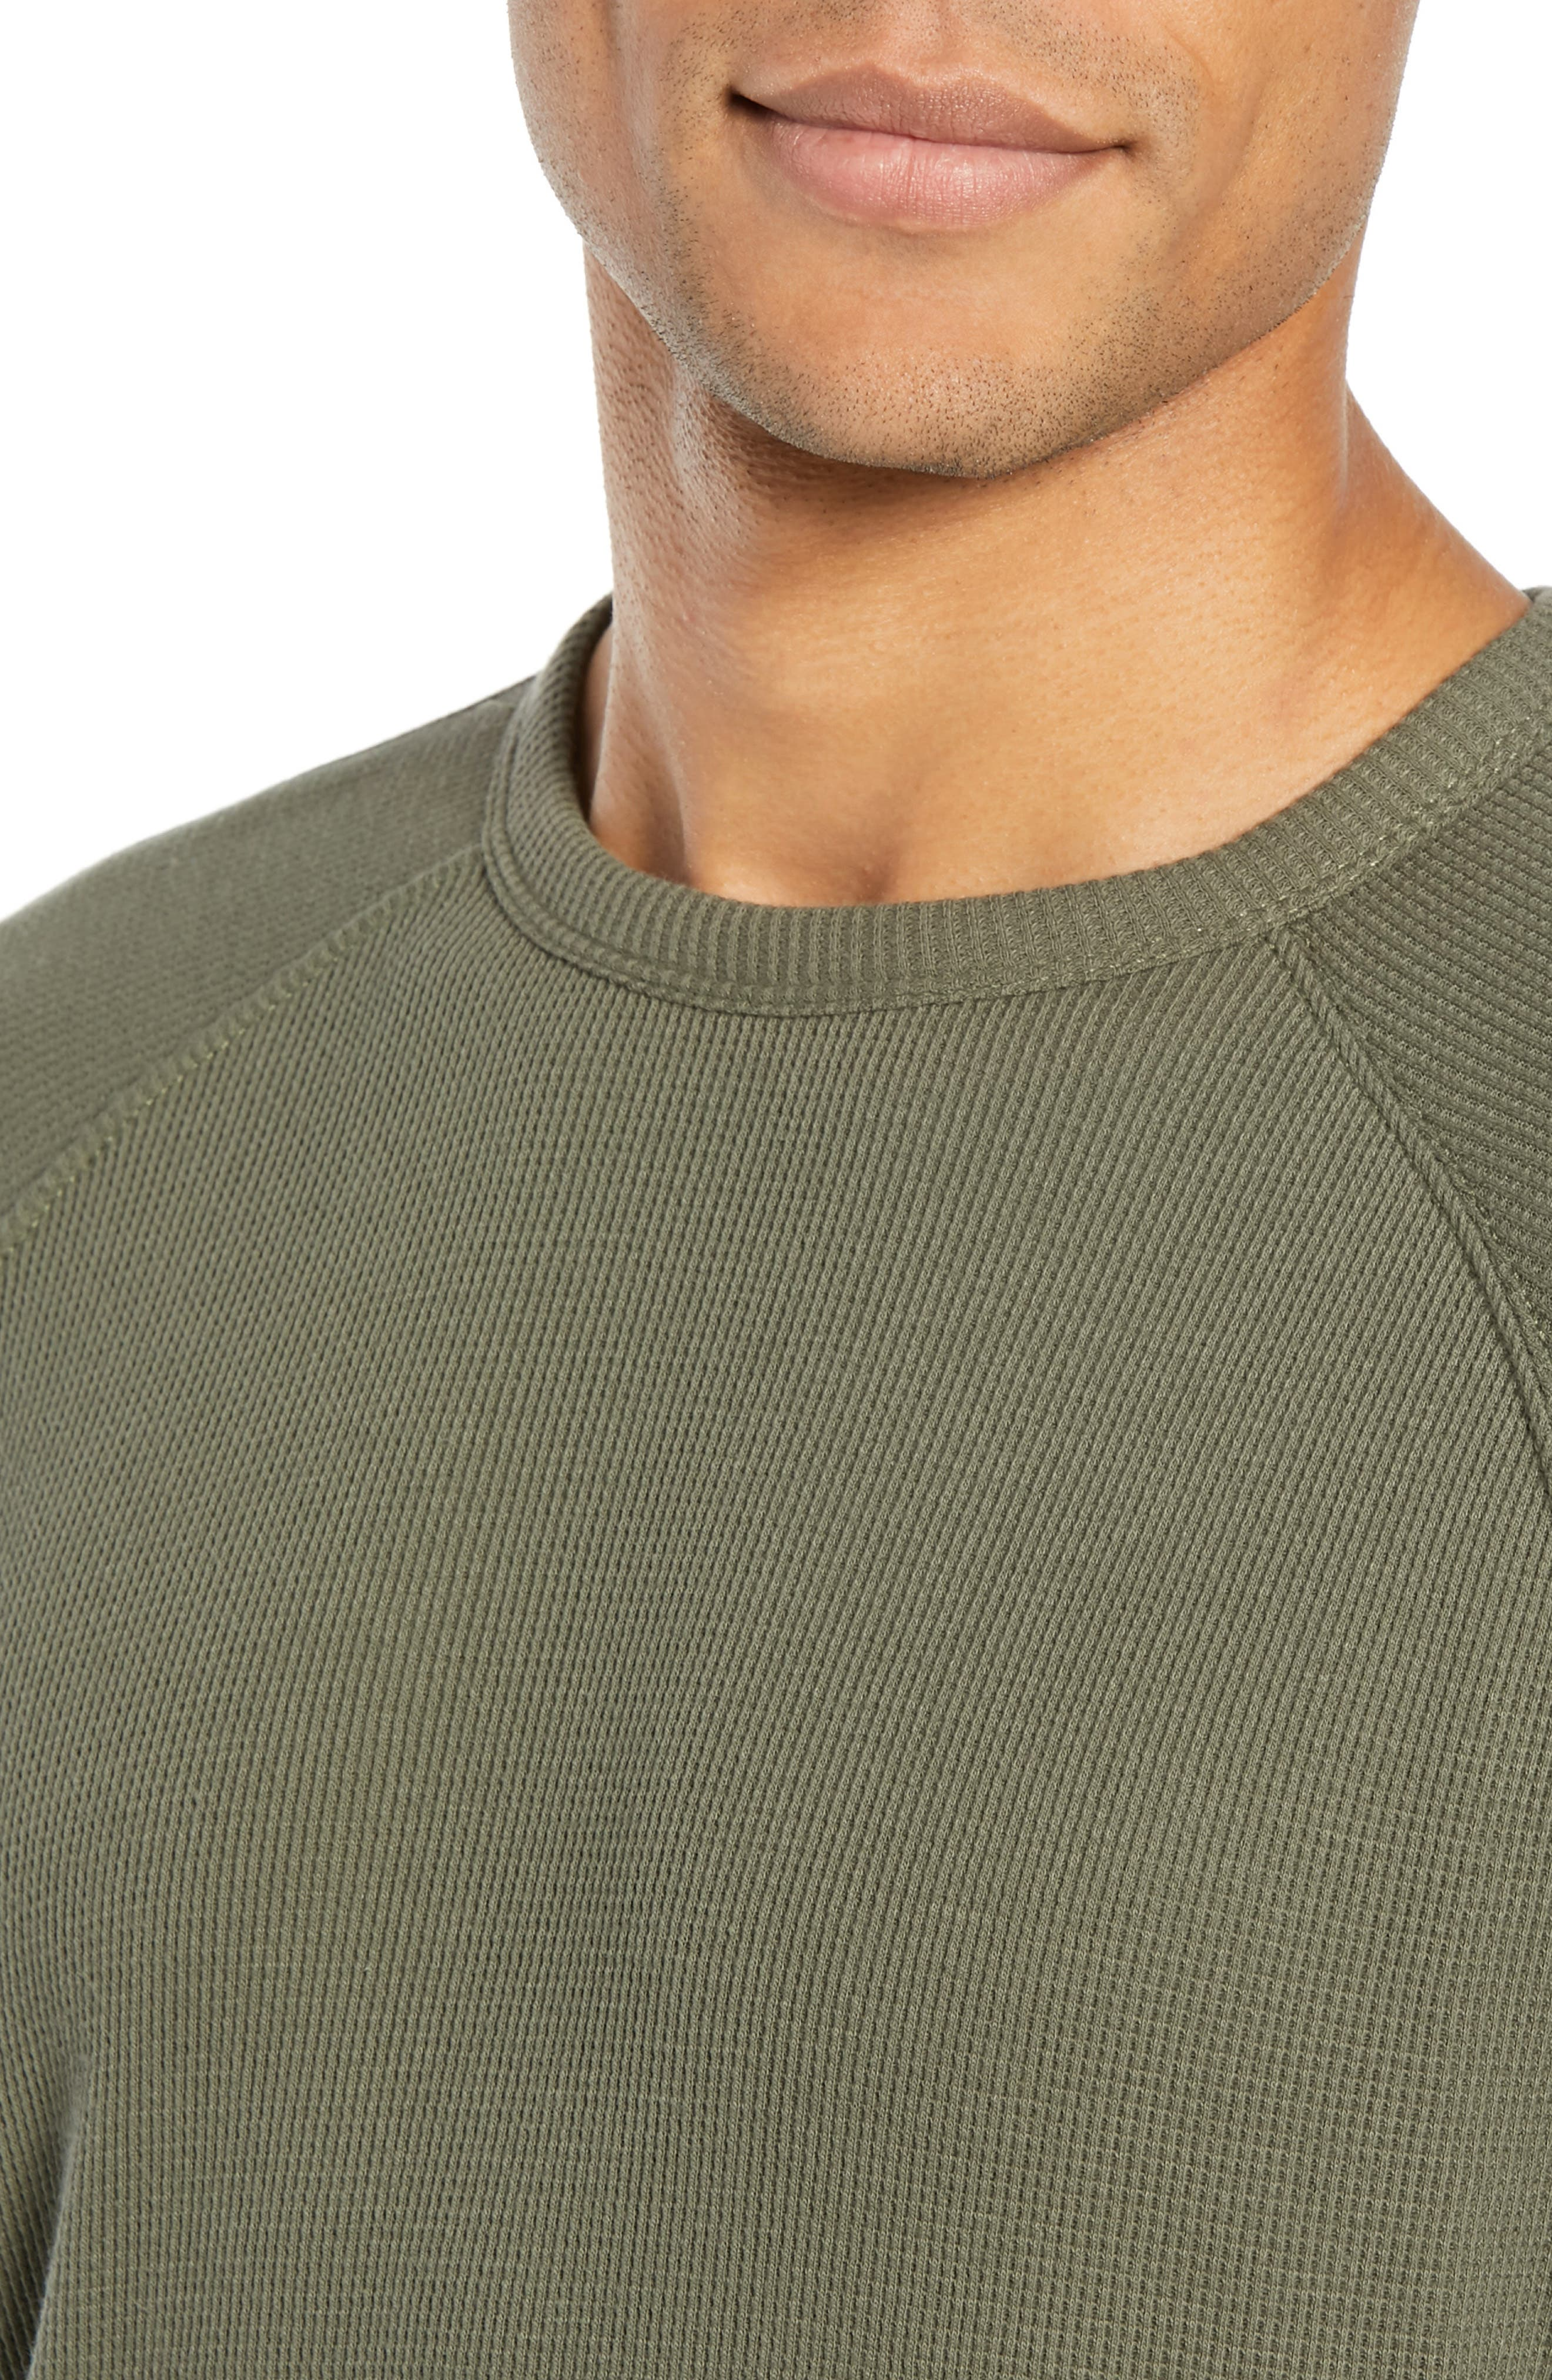 Waffle Knit Pullover,                             Alternate thumbnail 4, color,                             INFANTRY GREEN